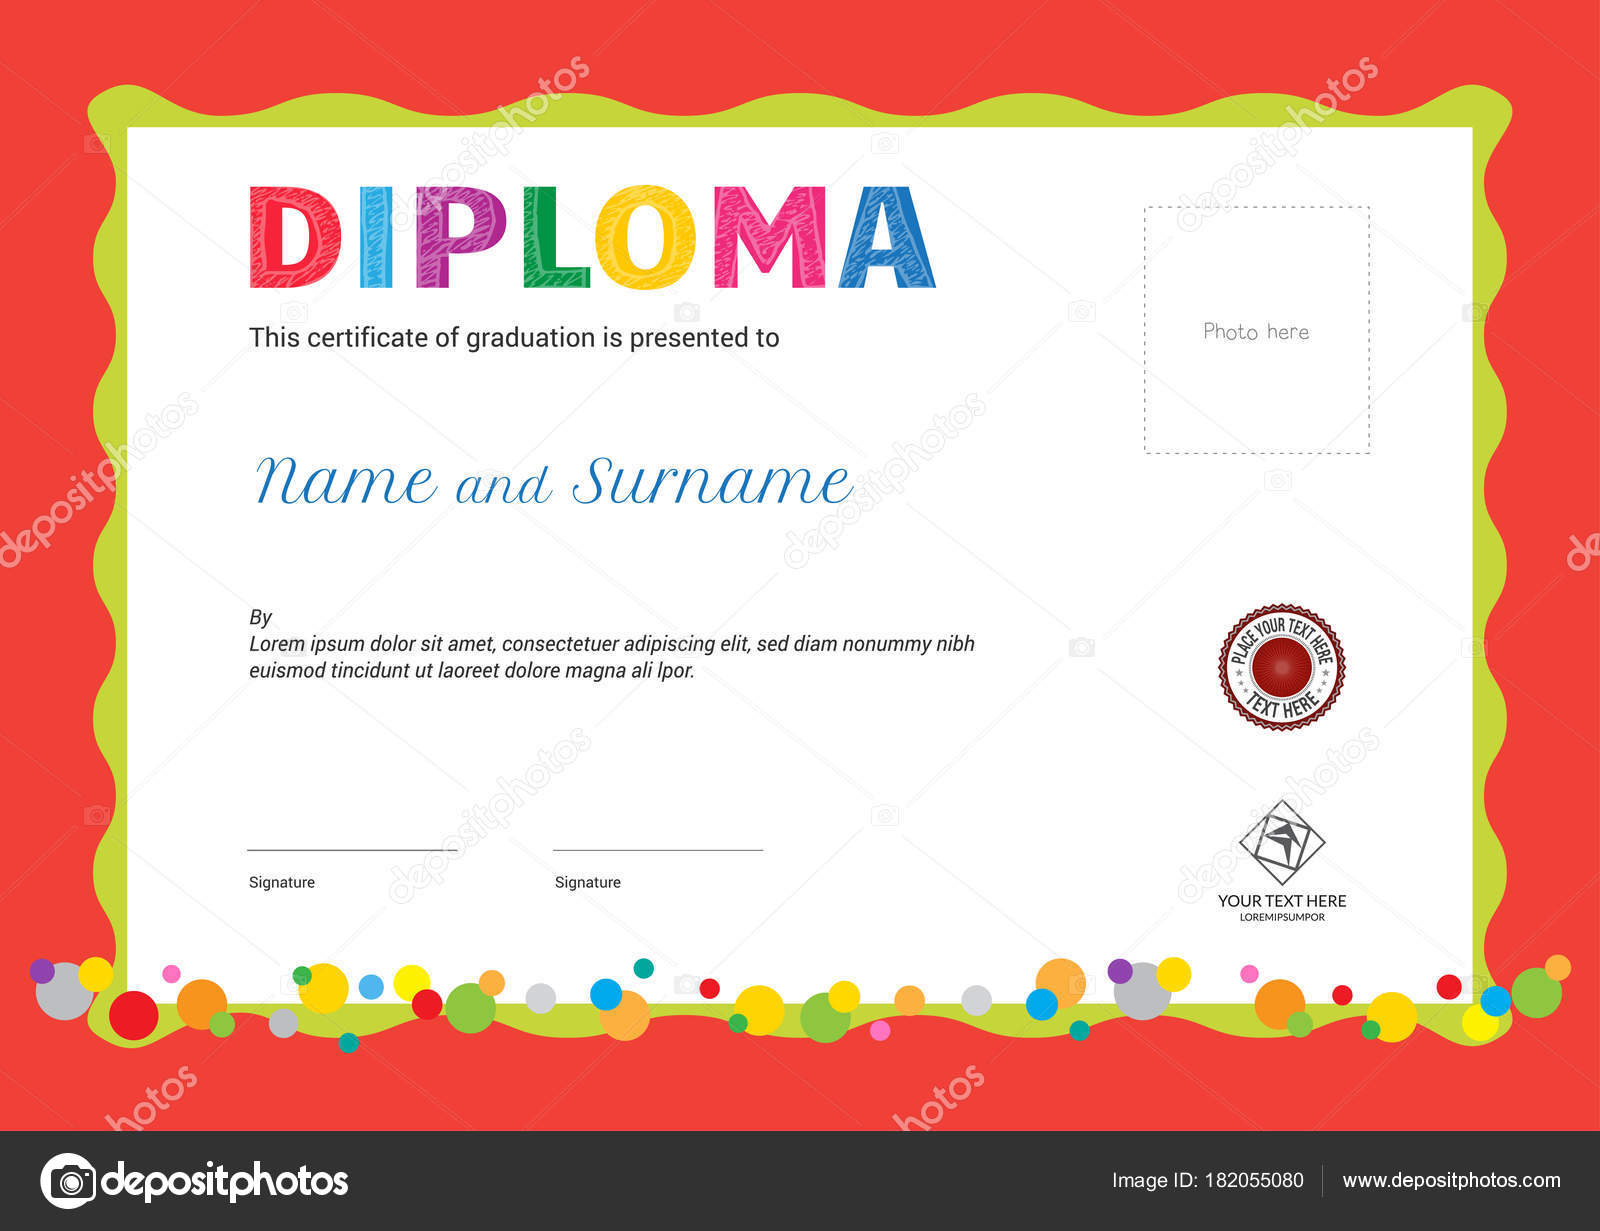 Kids summer camp diploma or certificate template with photo and kids summer camp diploma or certificate template with photo and seal space on orange background and yelopaper Image collections